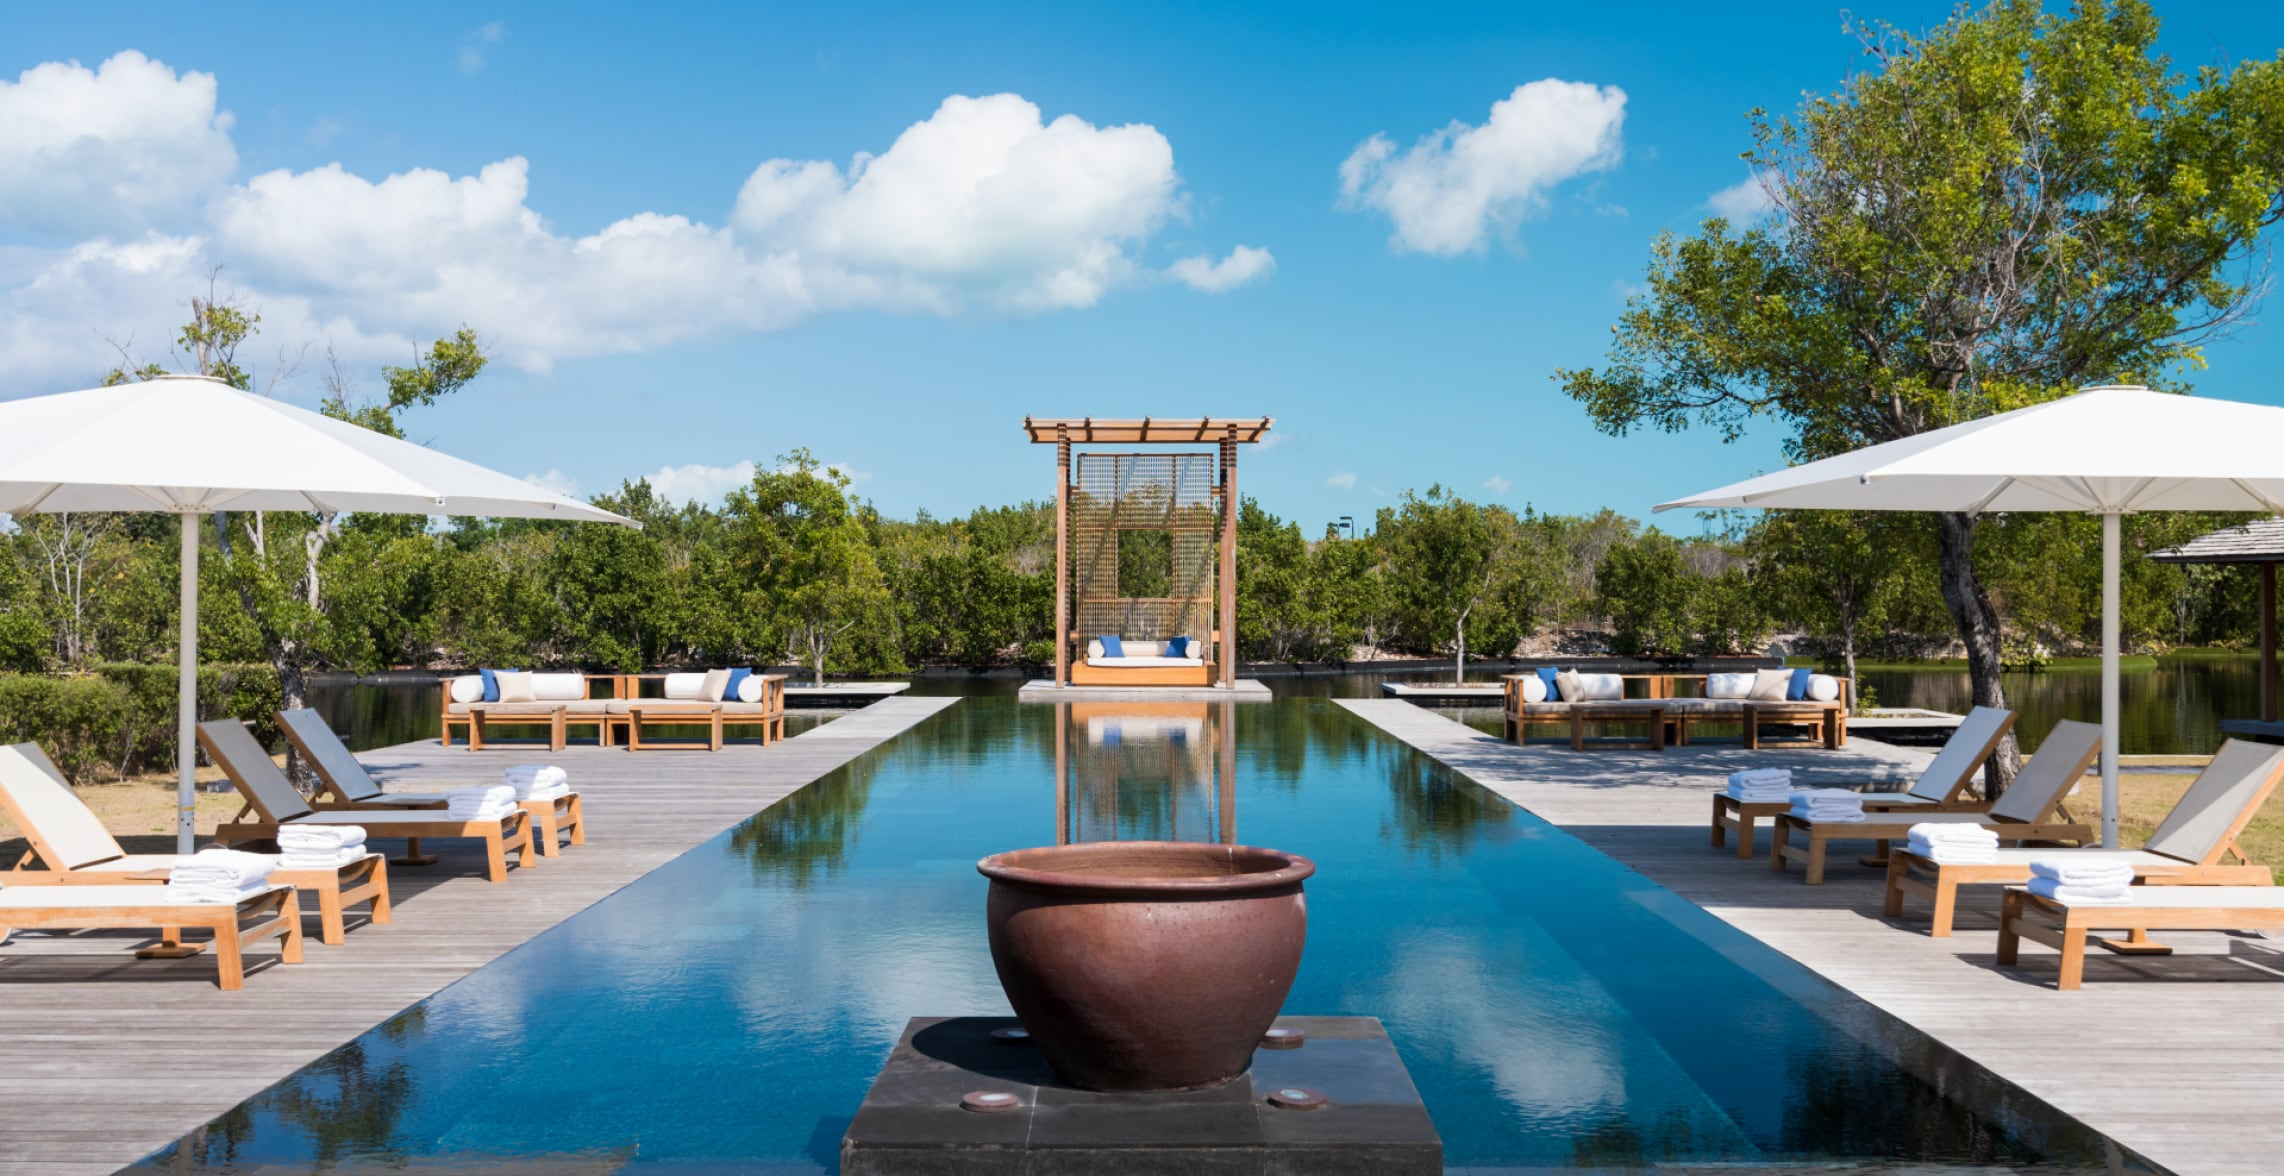 Amanyara, Turks and Caicos Luxury Resort